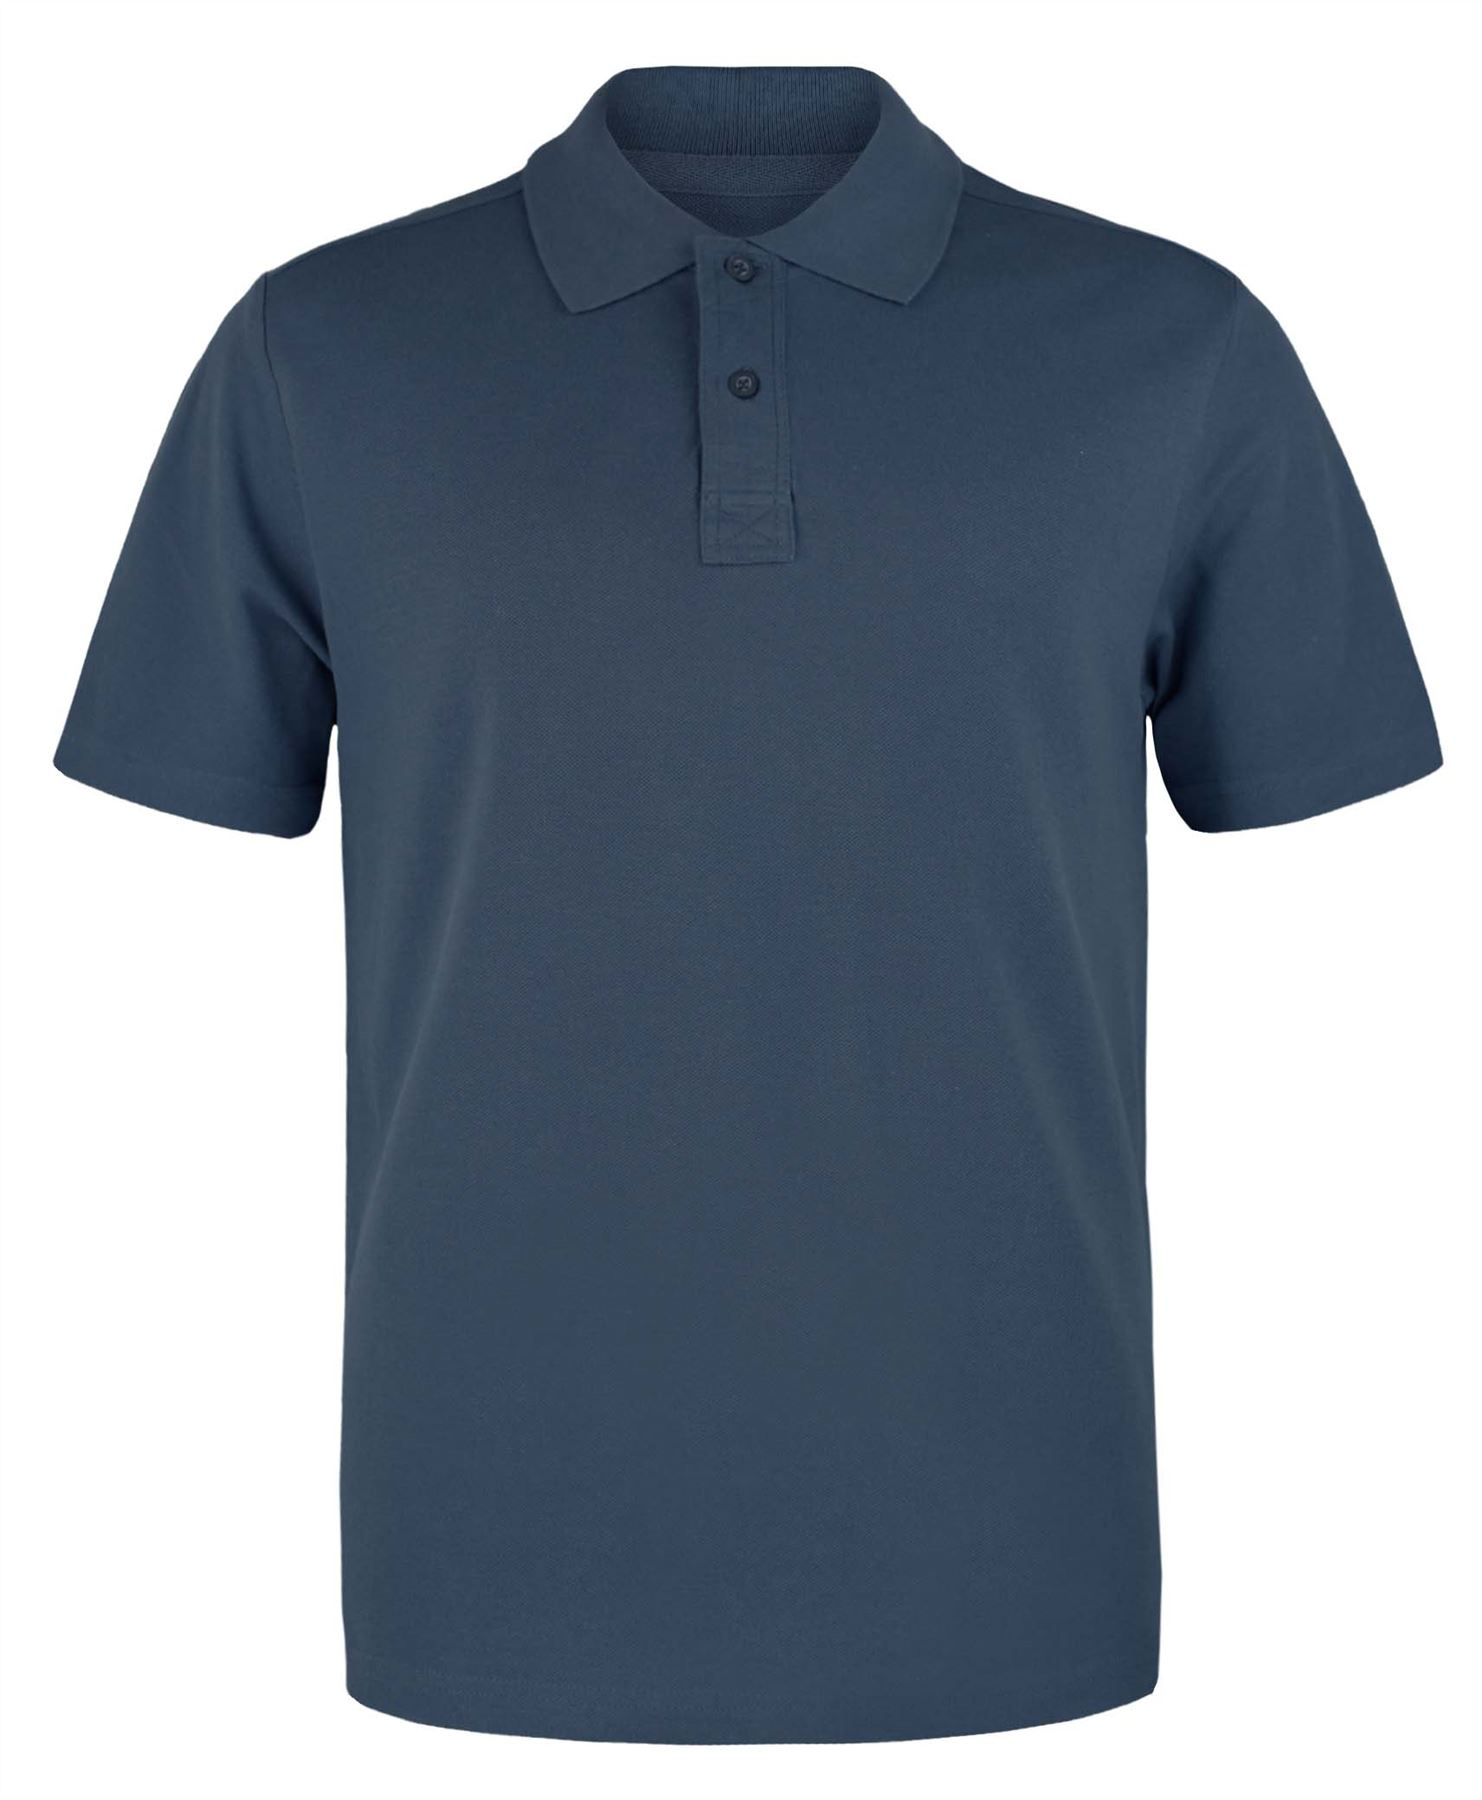 mens plain summer polo shirt short sleeve t shirt basic tops sizes s xxxl ebay. Black Bedroom Furniture Sets. Home Design Ideas